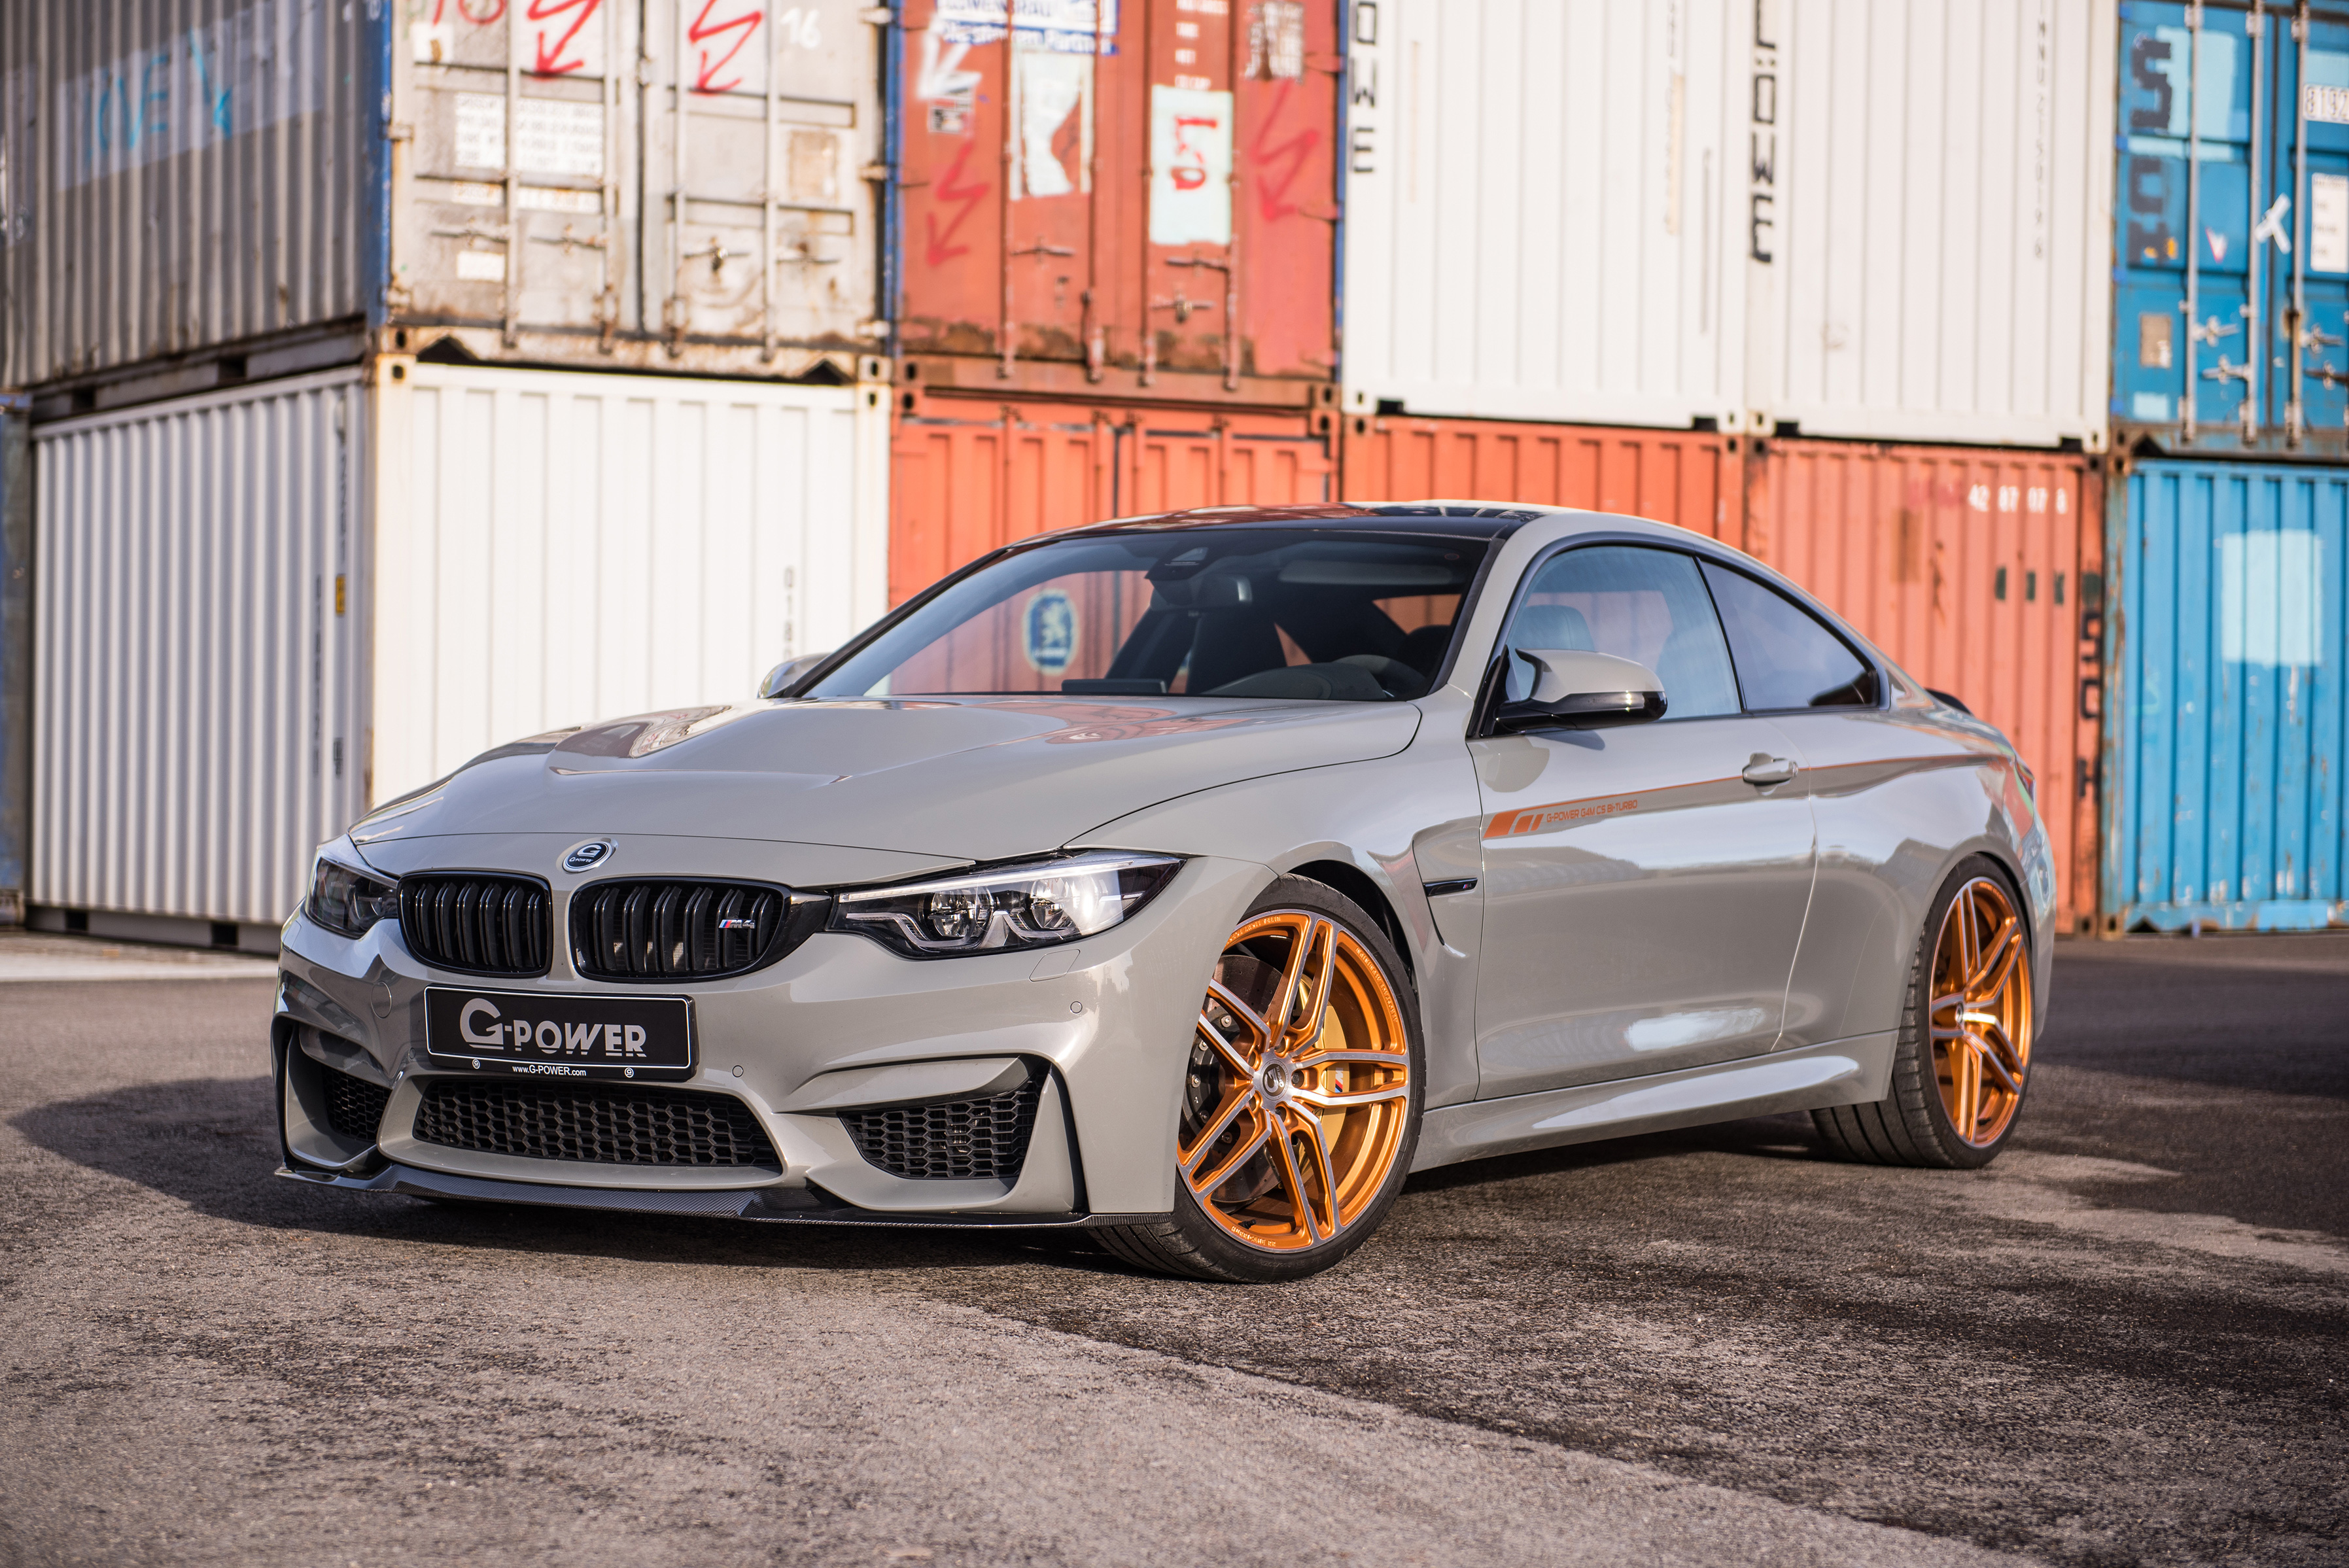 G Power Bmw M4 Cs 2018 Hd Cars 4k Wallpapers Images Backgrounds